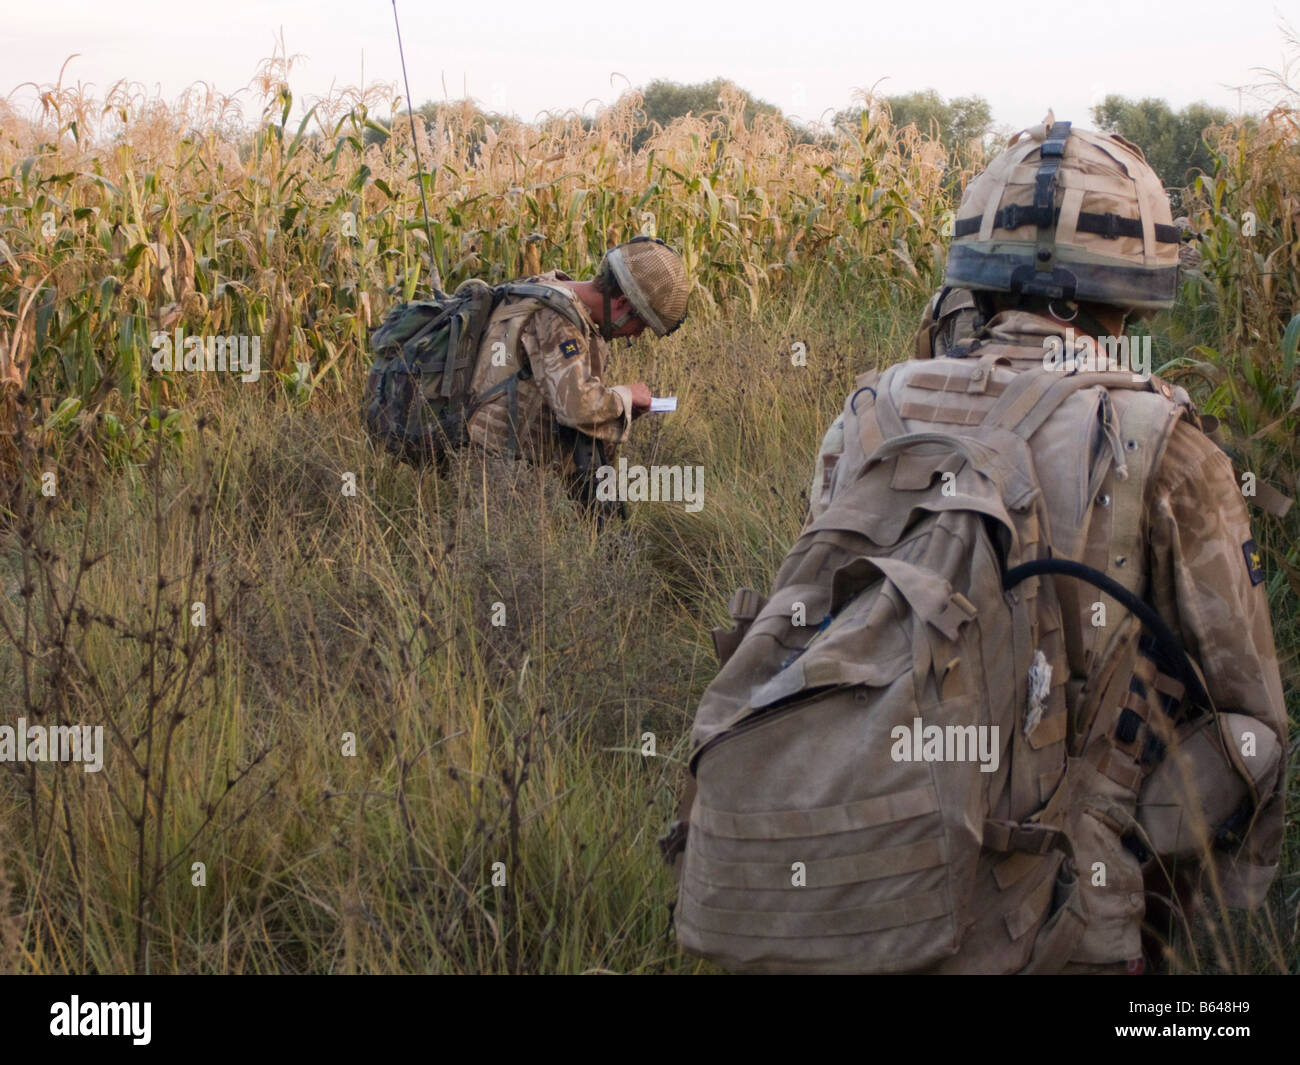 British Army soldier wearing body armour and checking map on patrol through maize crop in Helmand Province Afghaistan - Stock Image